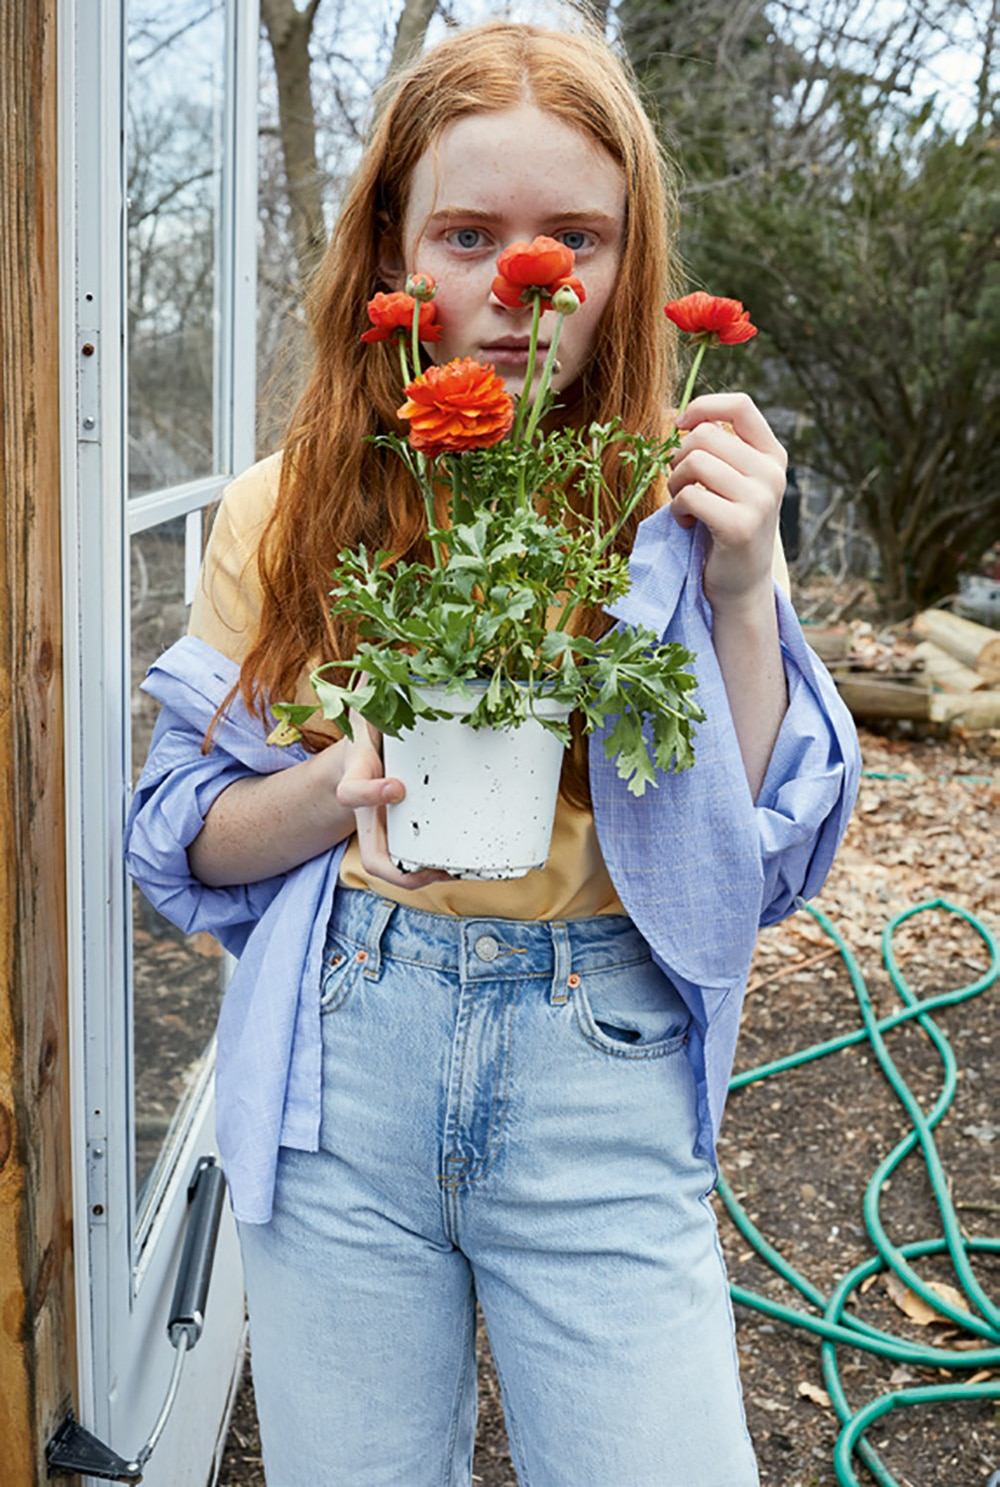 System Magazine Issue 11 Sadie Sink By Juergen Teller